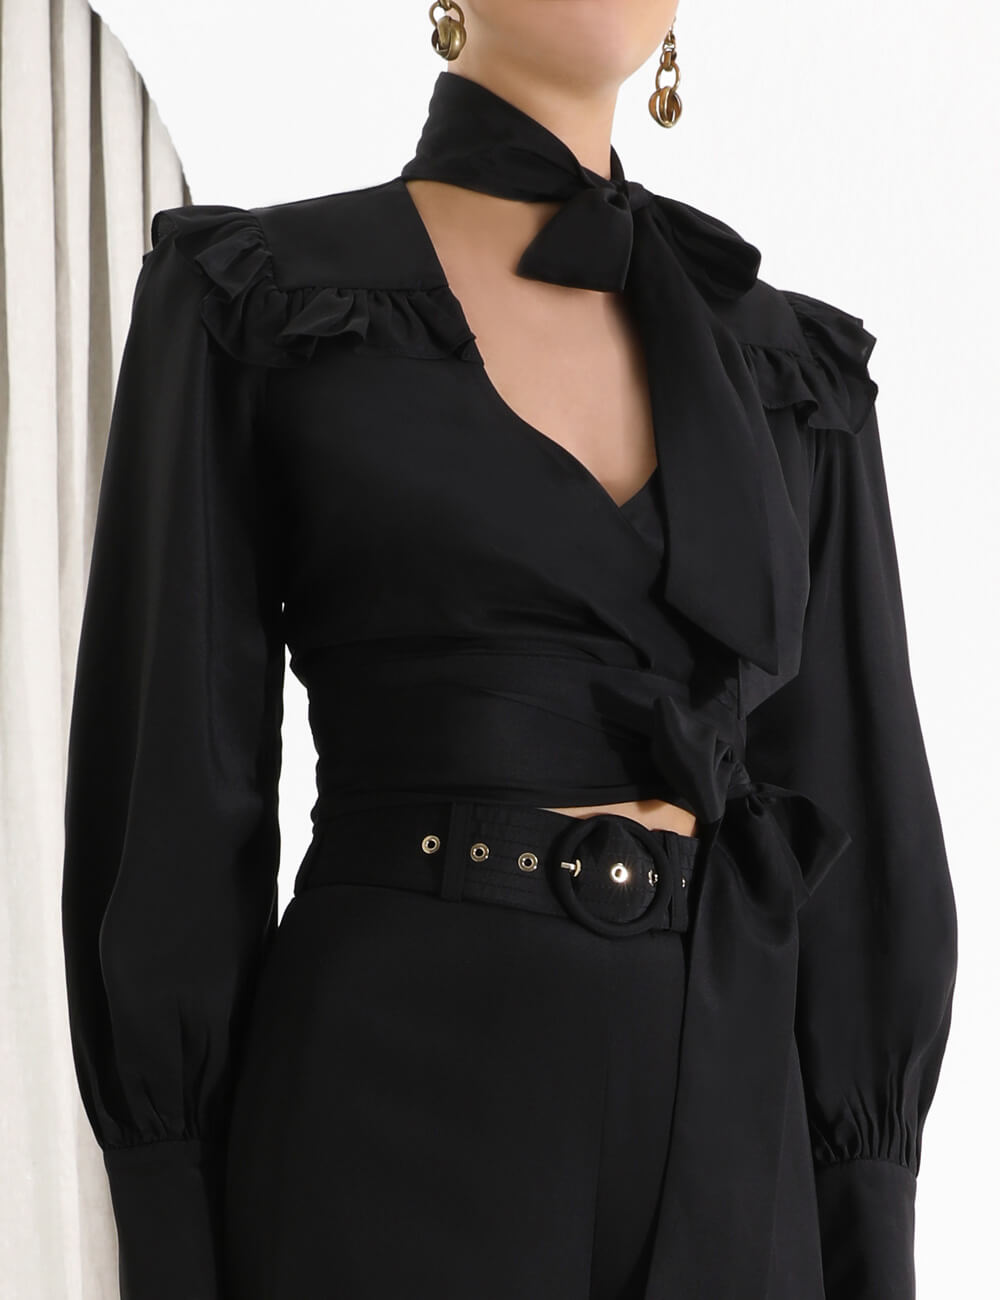 Espionage Wrap Top